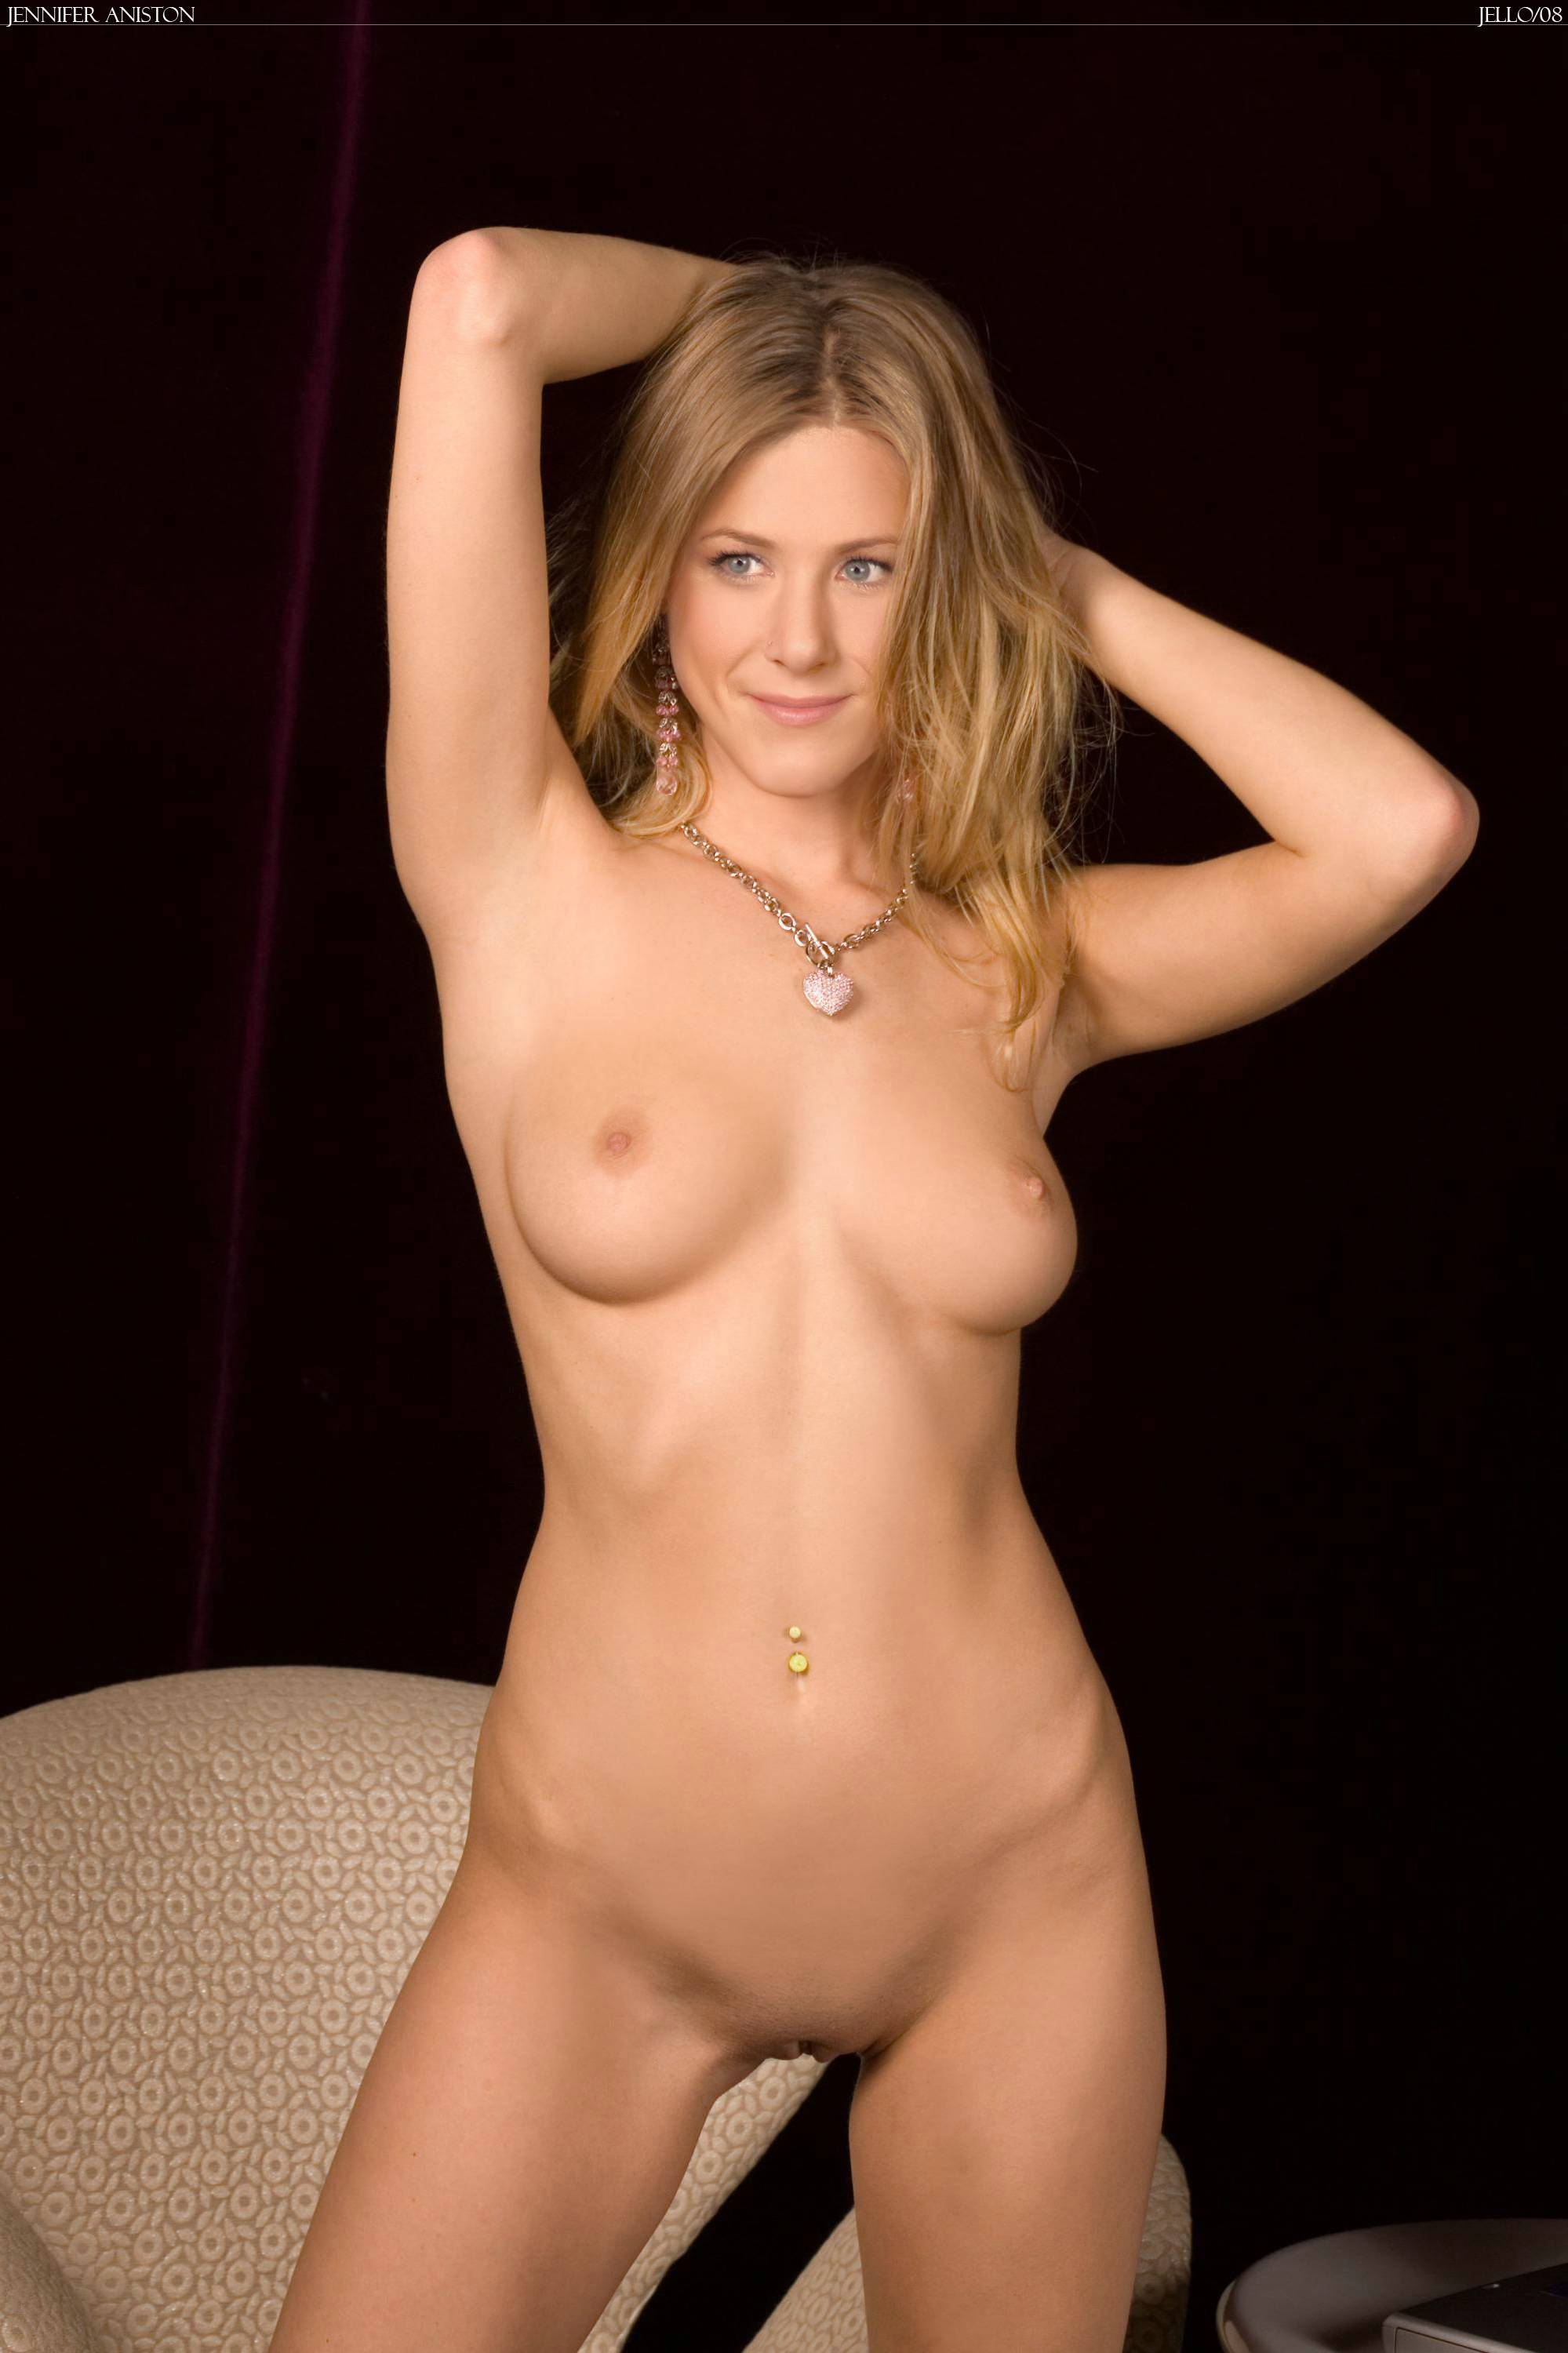 Fakes nude jennifer aniston